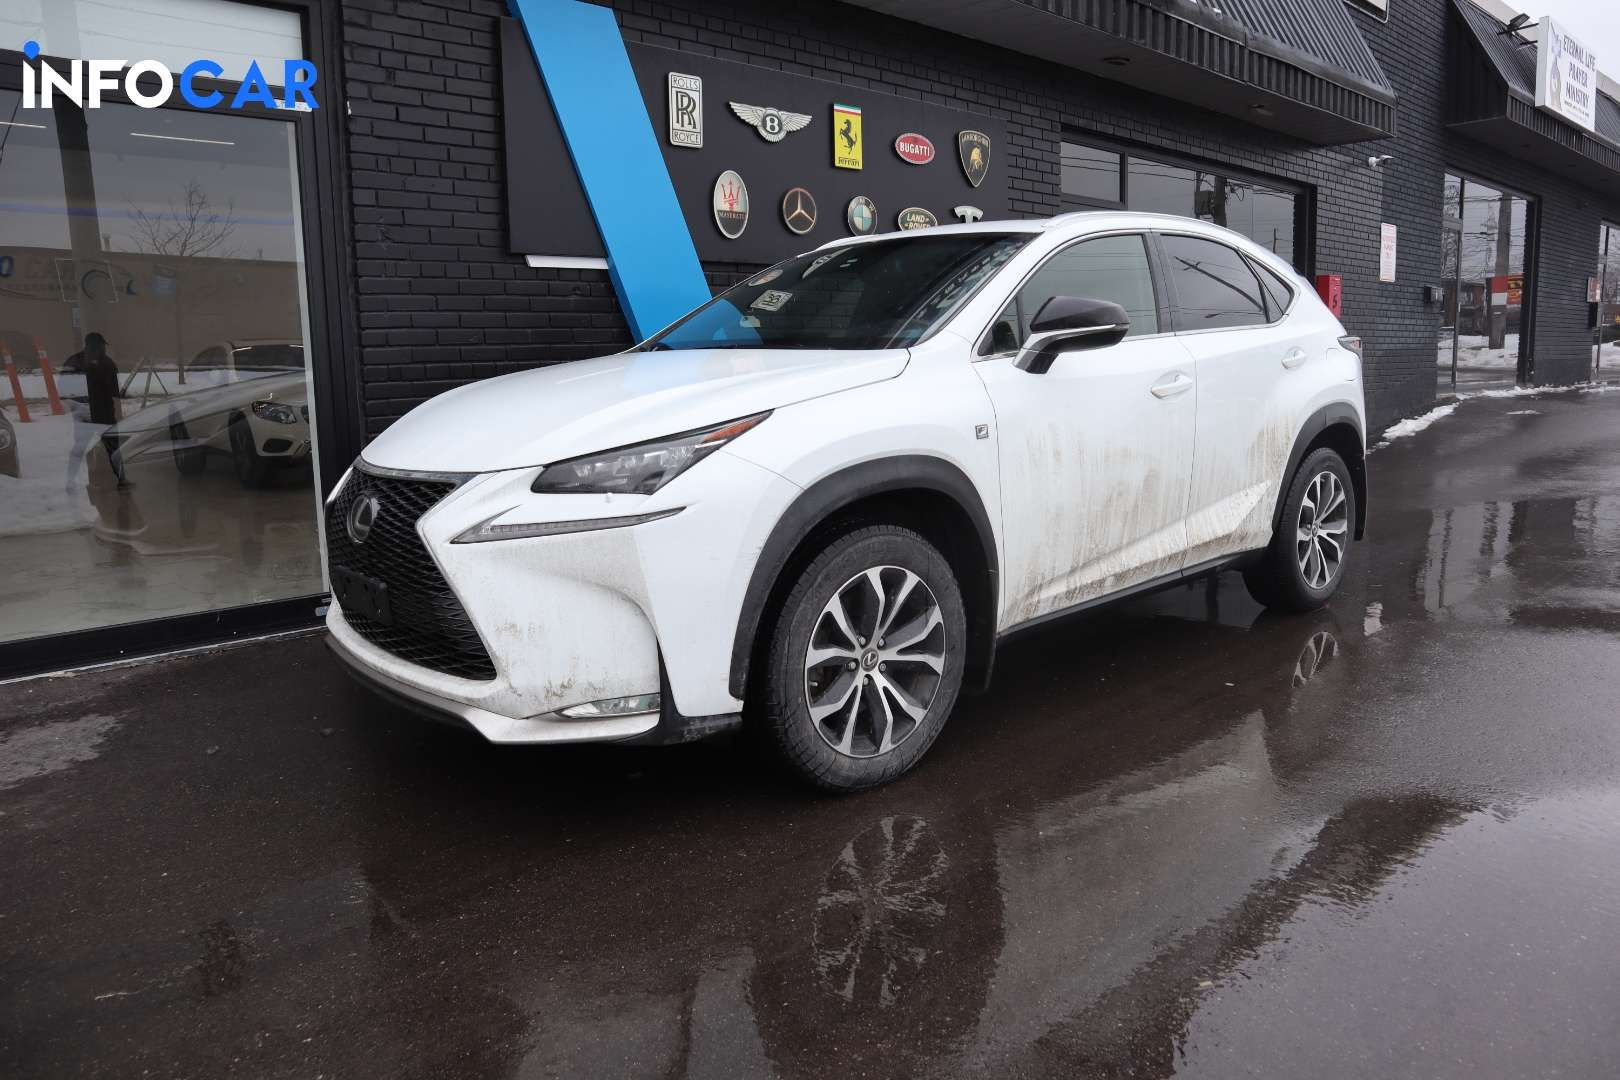 2017 Lexus NX 200t null - INFOCAR - Toronto's Most Comprehensive New and Used Auto Trading Platform